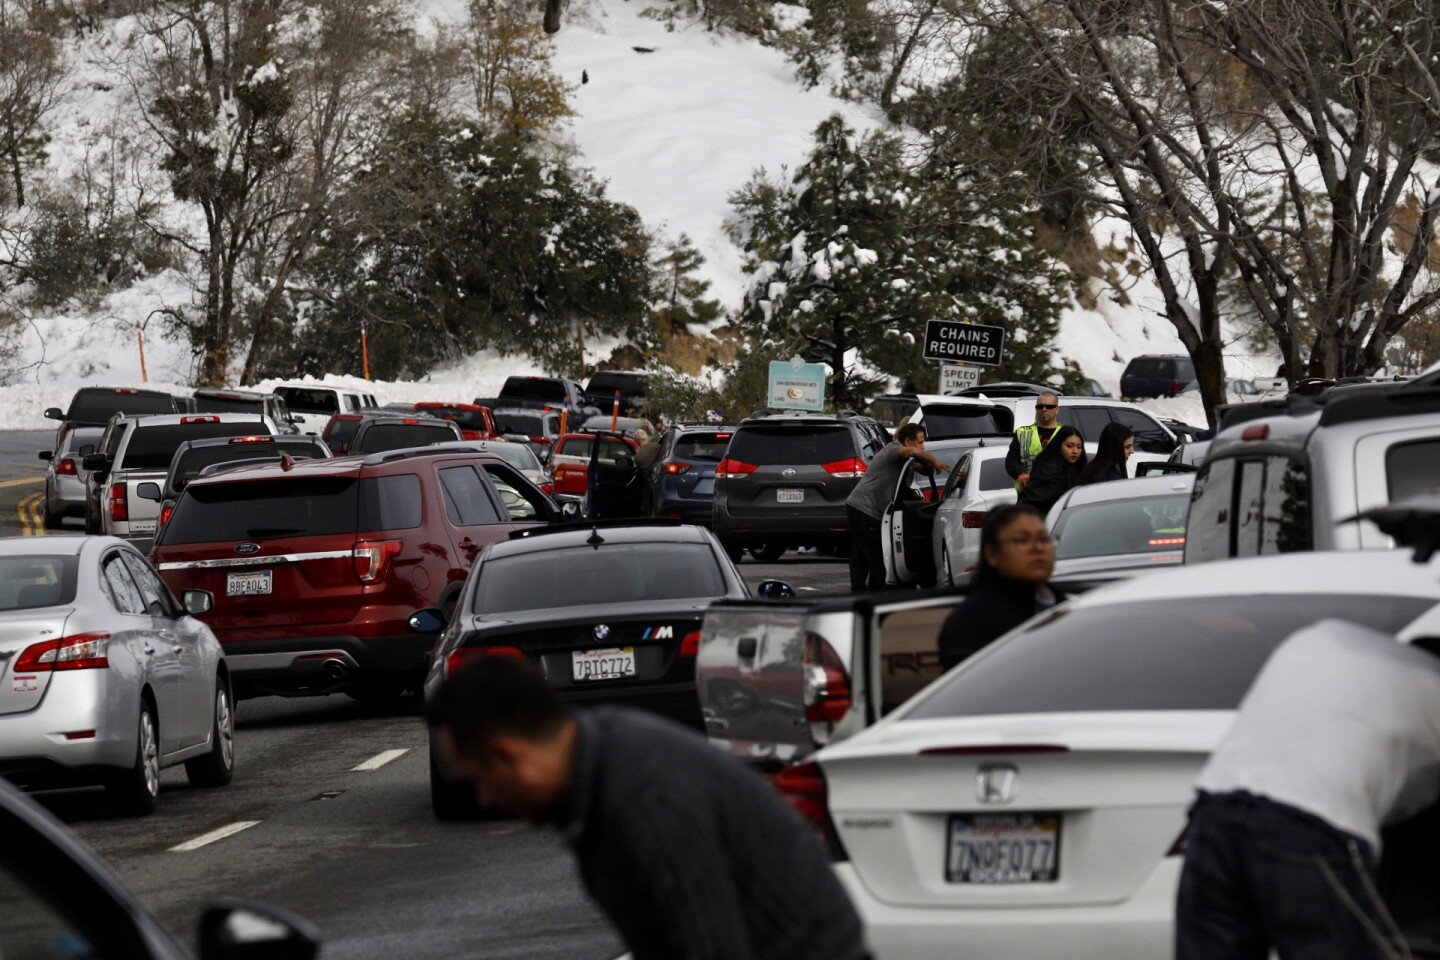 Gridlock on route 330 towards Big Bear as drivers pull over to put on chains at the CalTrans check point due to icy road conditions.